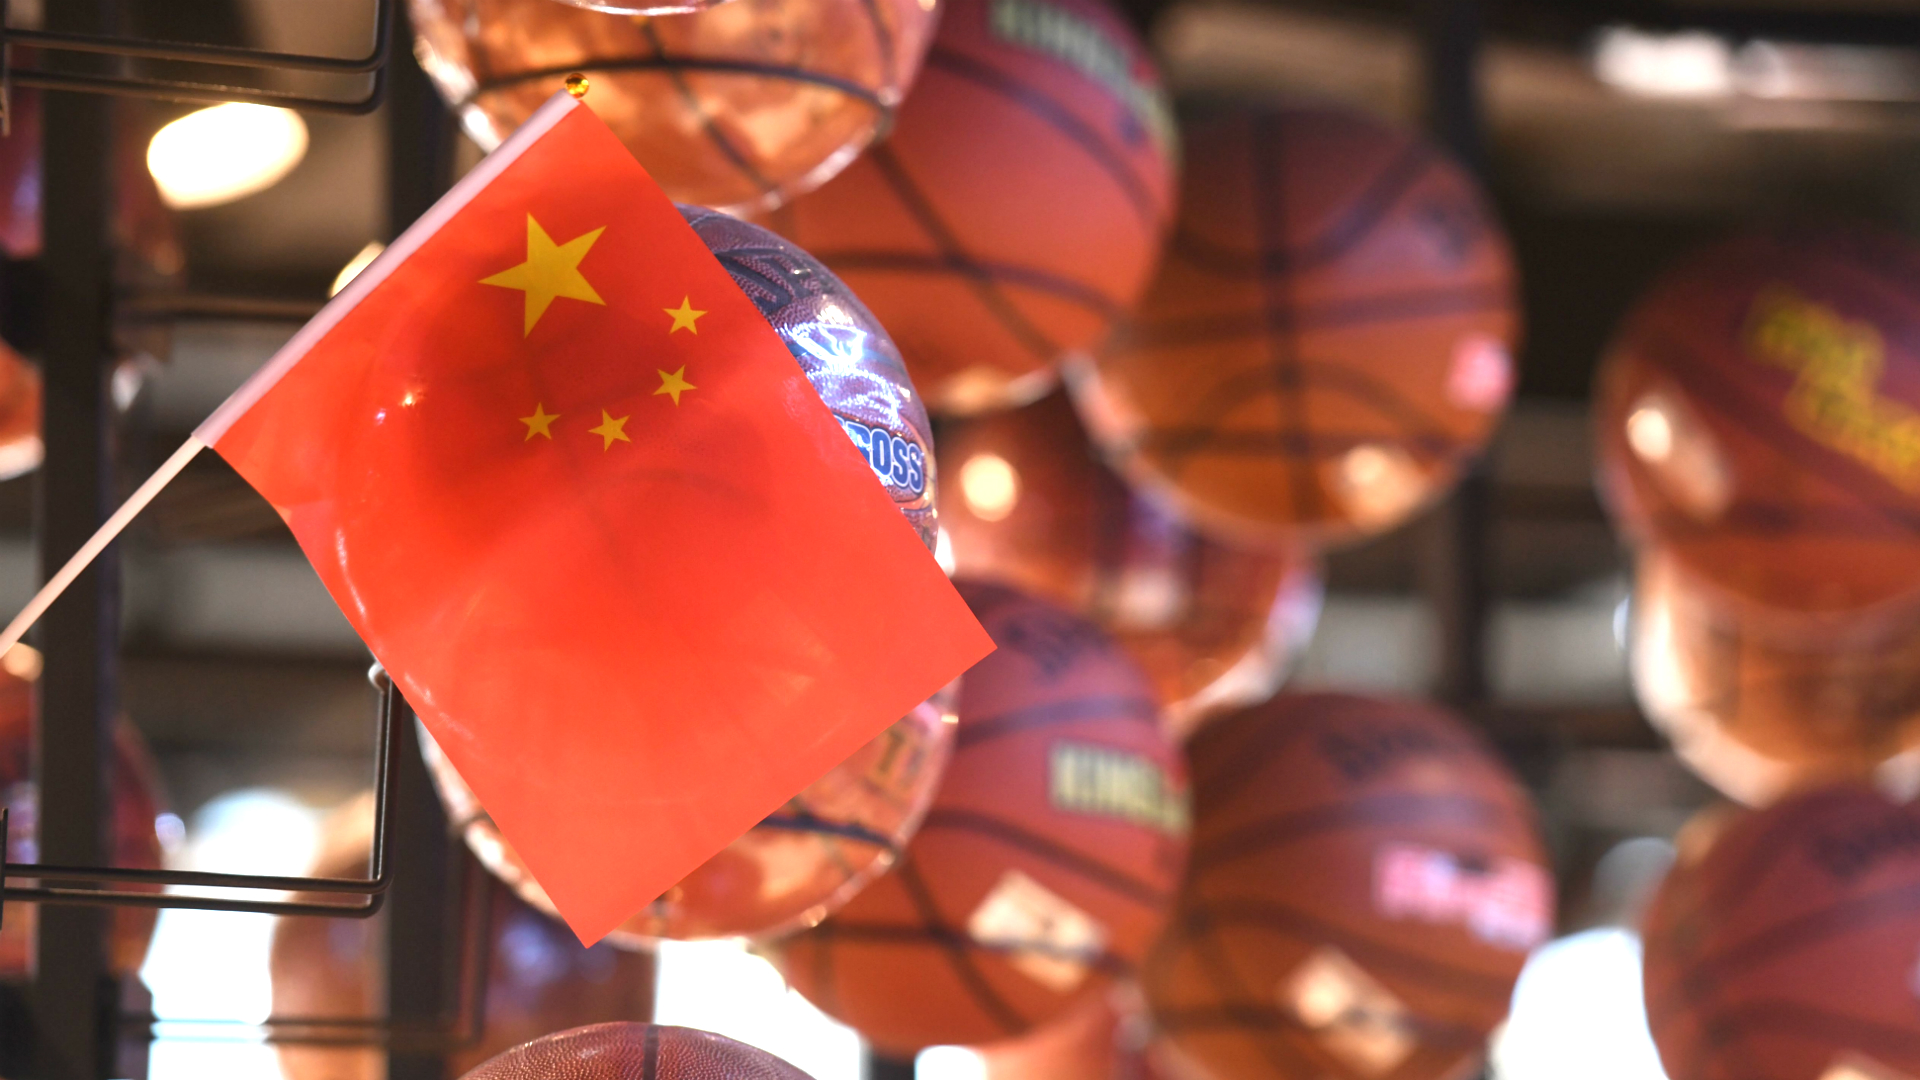 Lakers-Nets game goes on as NBA-China situation continues to bubble